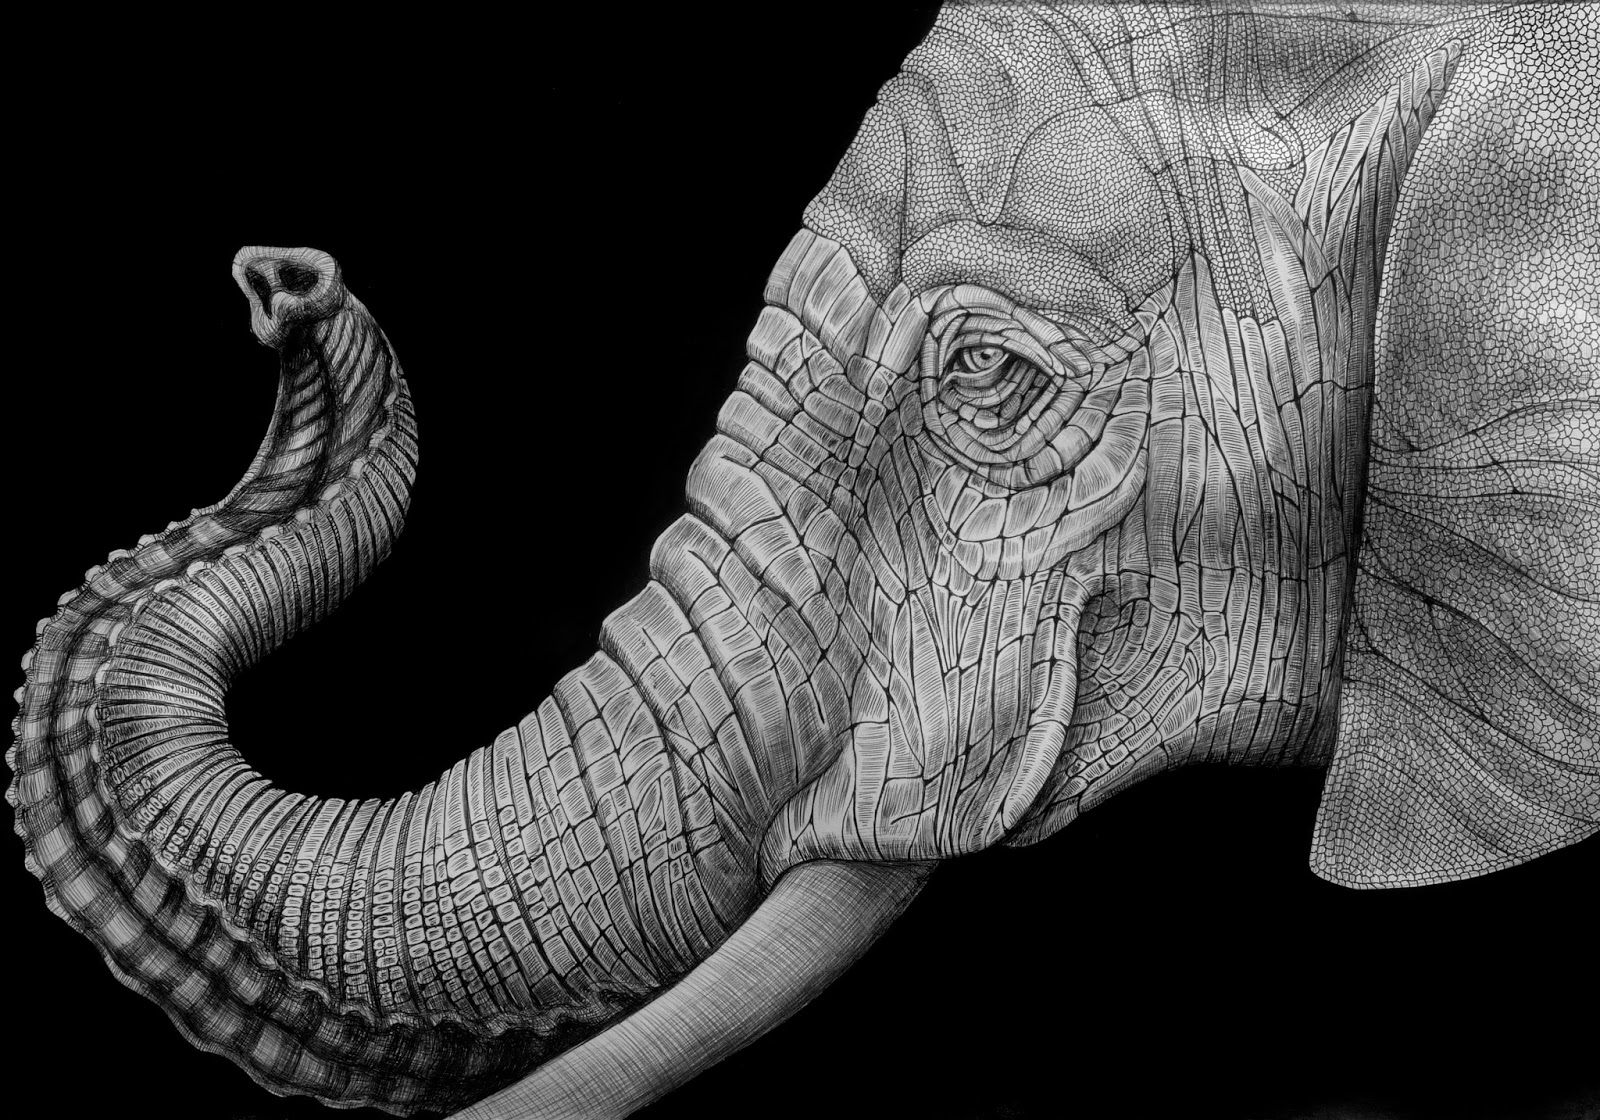 elephant face drawing - photo #23